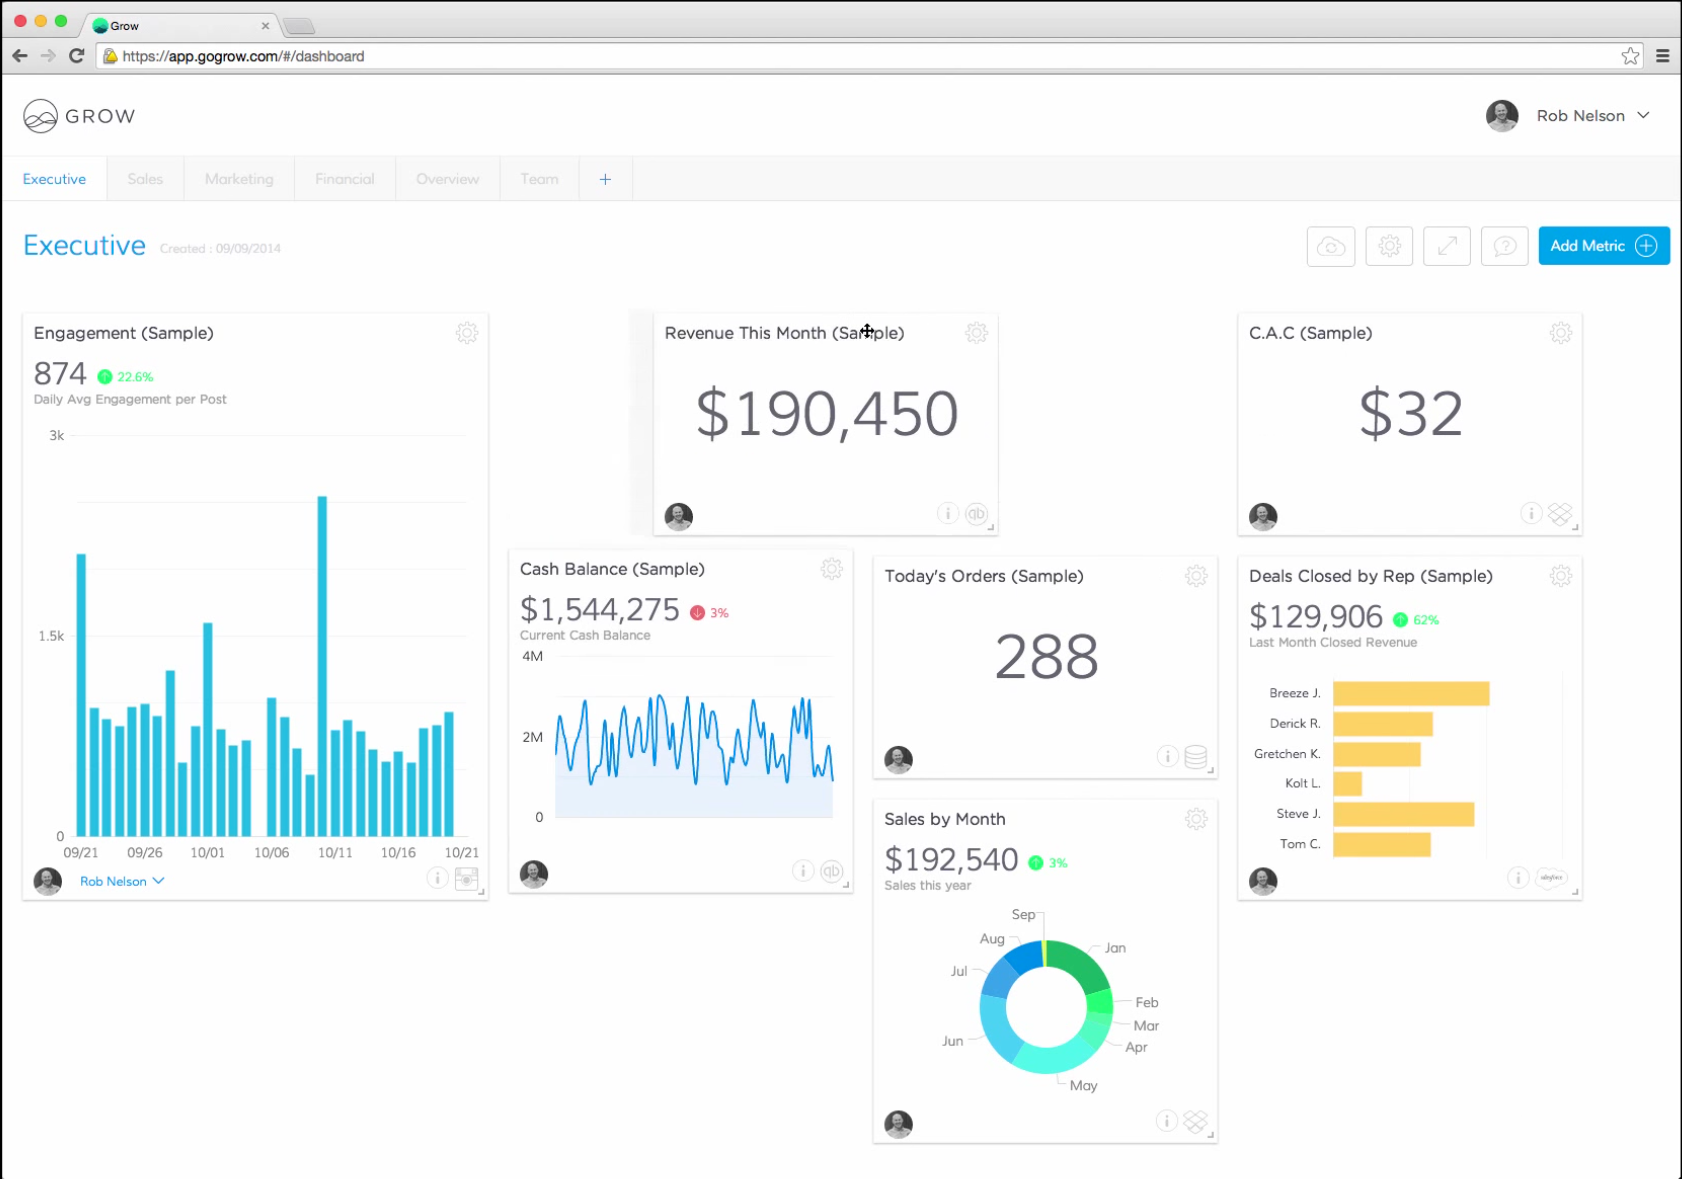 Grow Software - The home dashboard is made up of data metric widgets that can be resized and rearranged